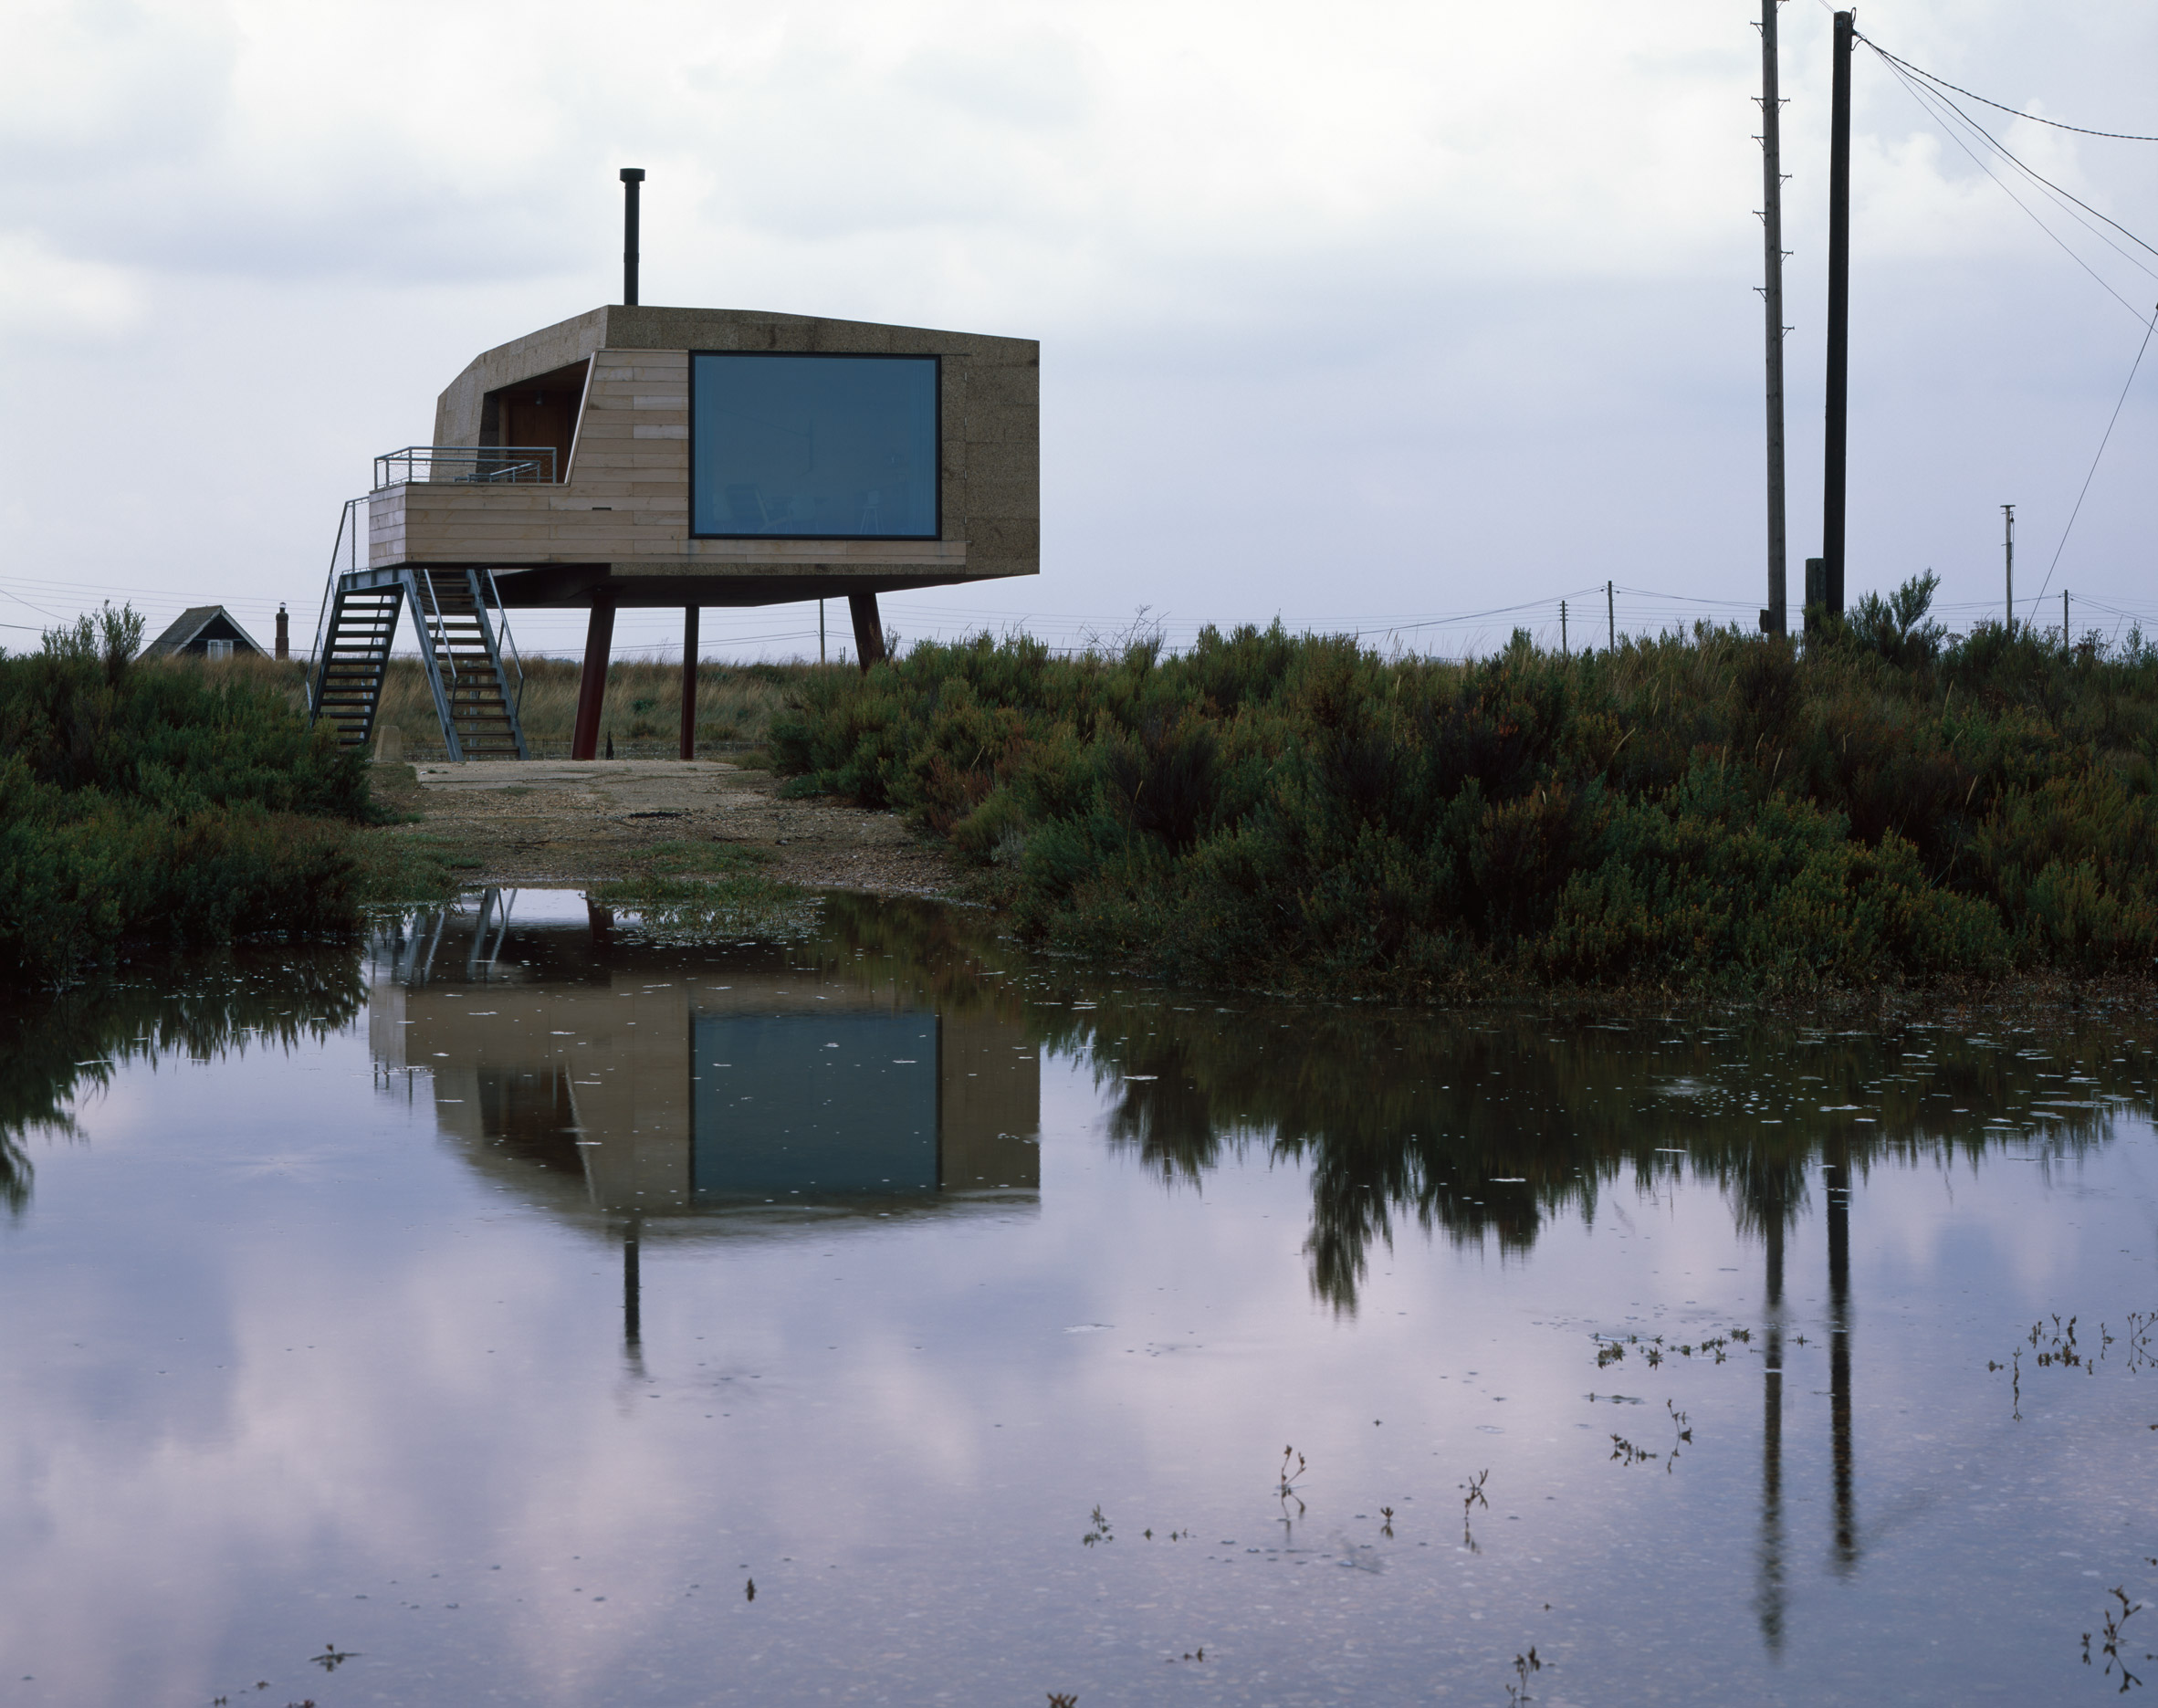 Redshank artist's studio is a cork-clad cabin raised above a tidal salt marsh